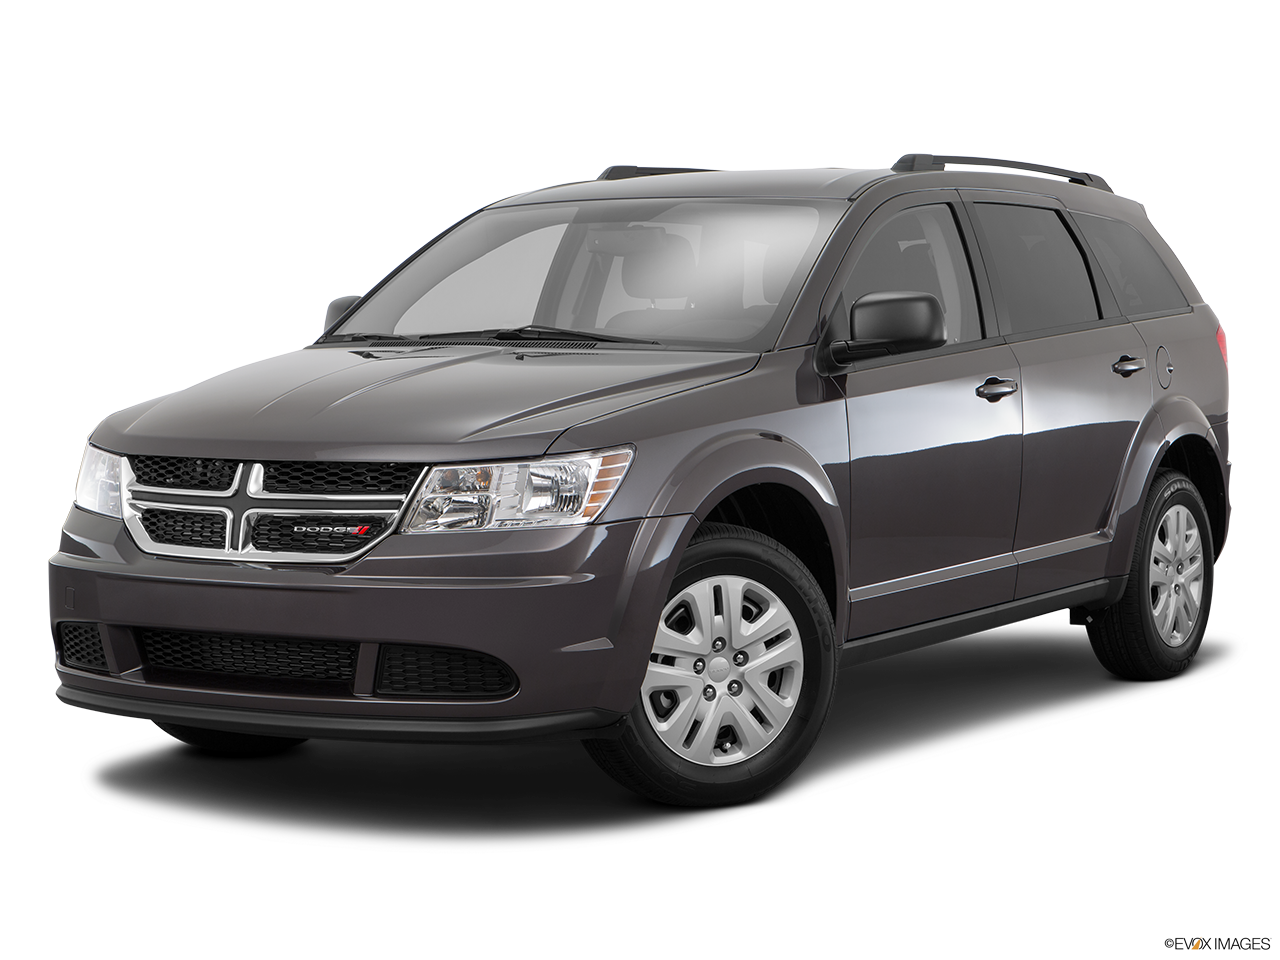 new 2016 dodge journey premier chrysler dodge jeep ram. Black Bedroom Furniture Sets. Home Design Ideas